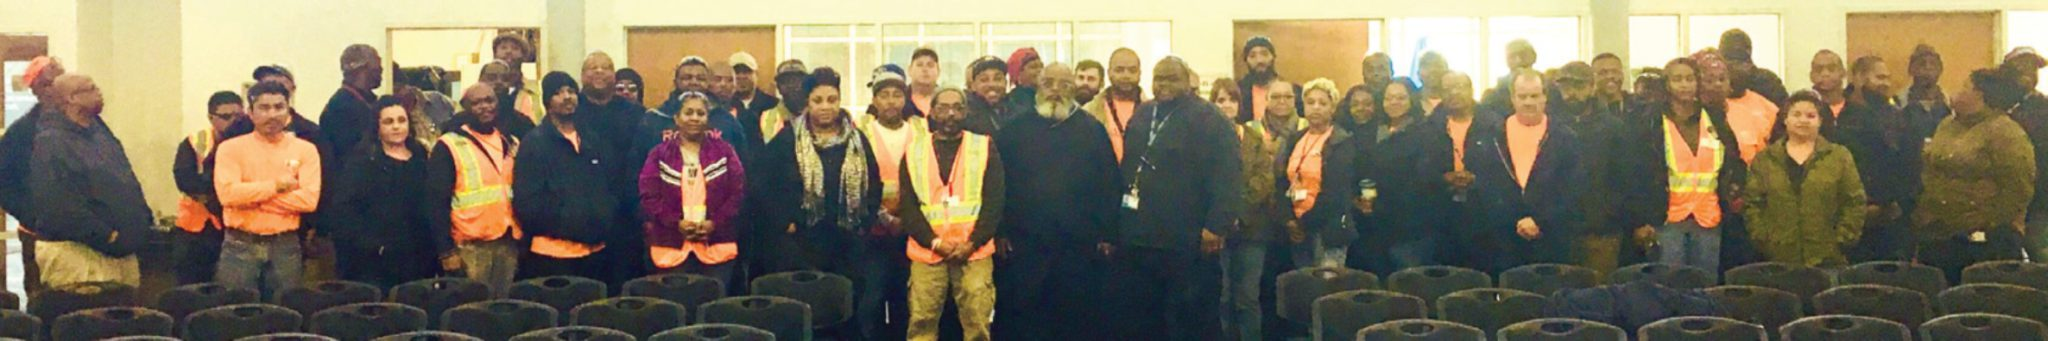 Durham Project Team Earns NCDOL Gold Safety Award